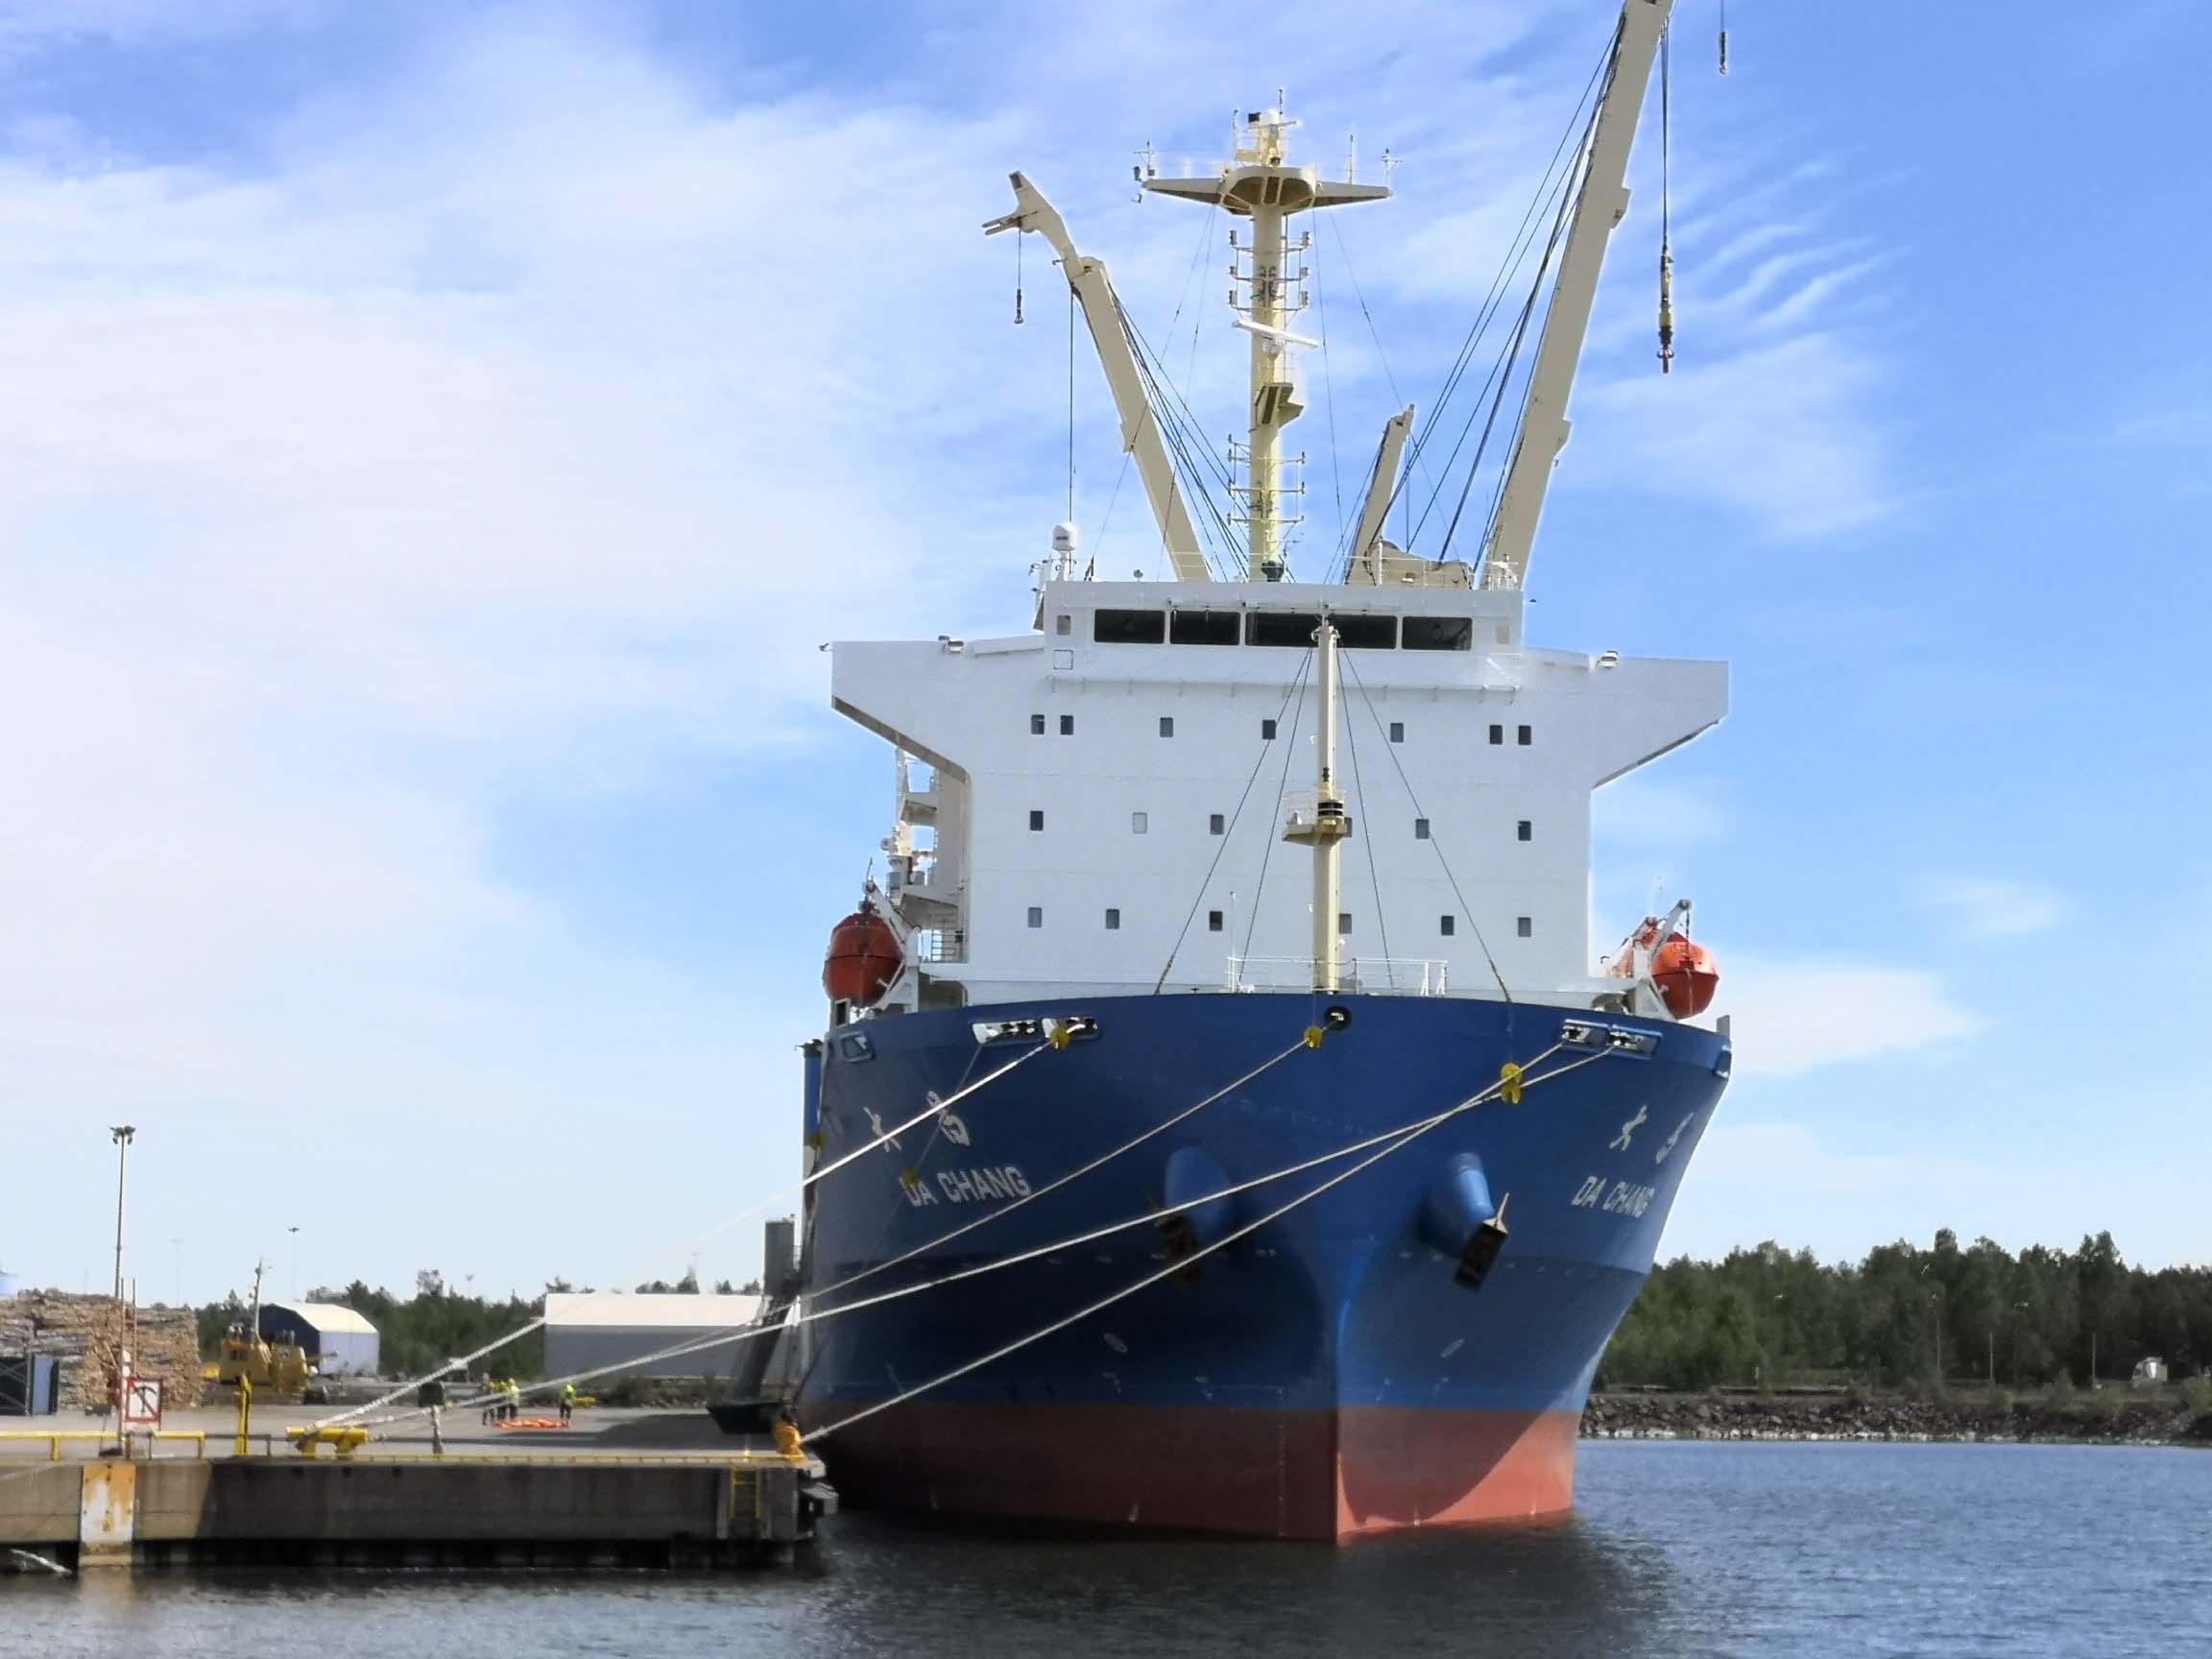 Port_of_Raahe_Da_Chang_3.jpg